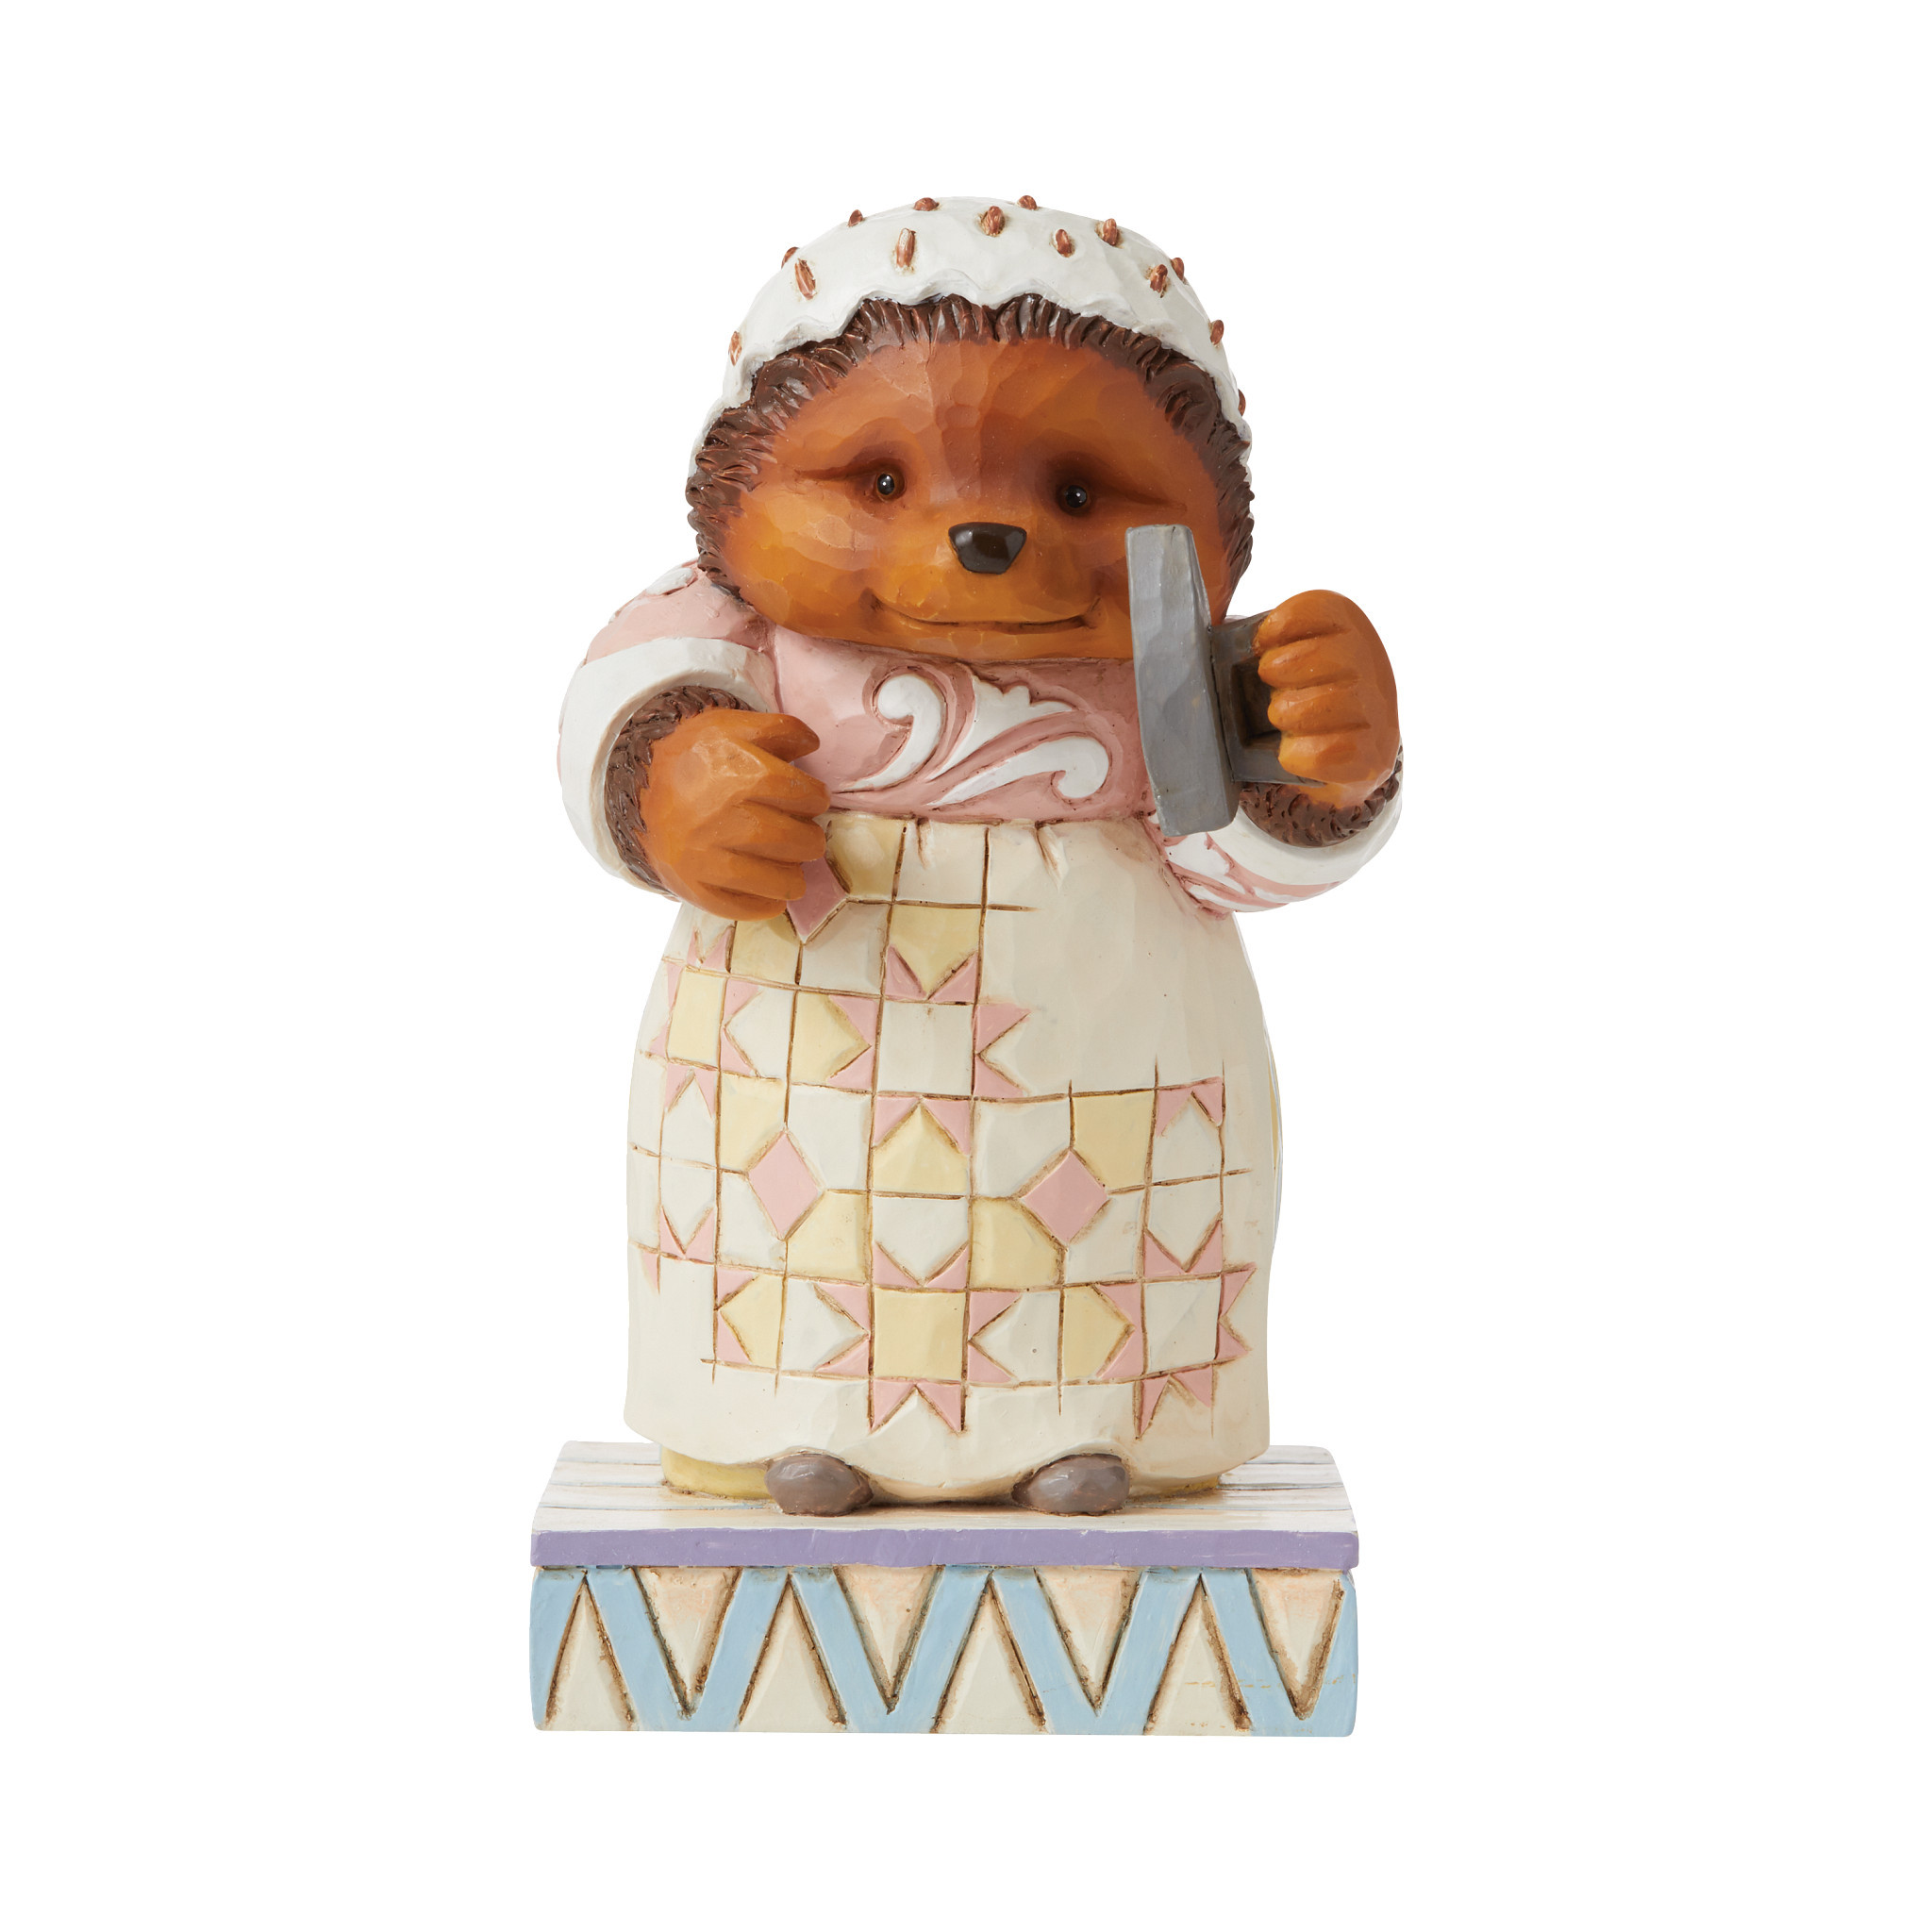 Jim Shore - Figurines 'Lily-white and Clean, Oh (Mrs. Tiggy-winkle Figurine) N' 2021